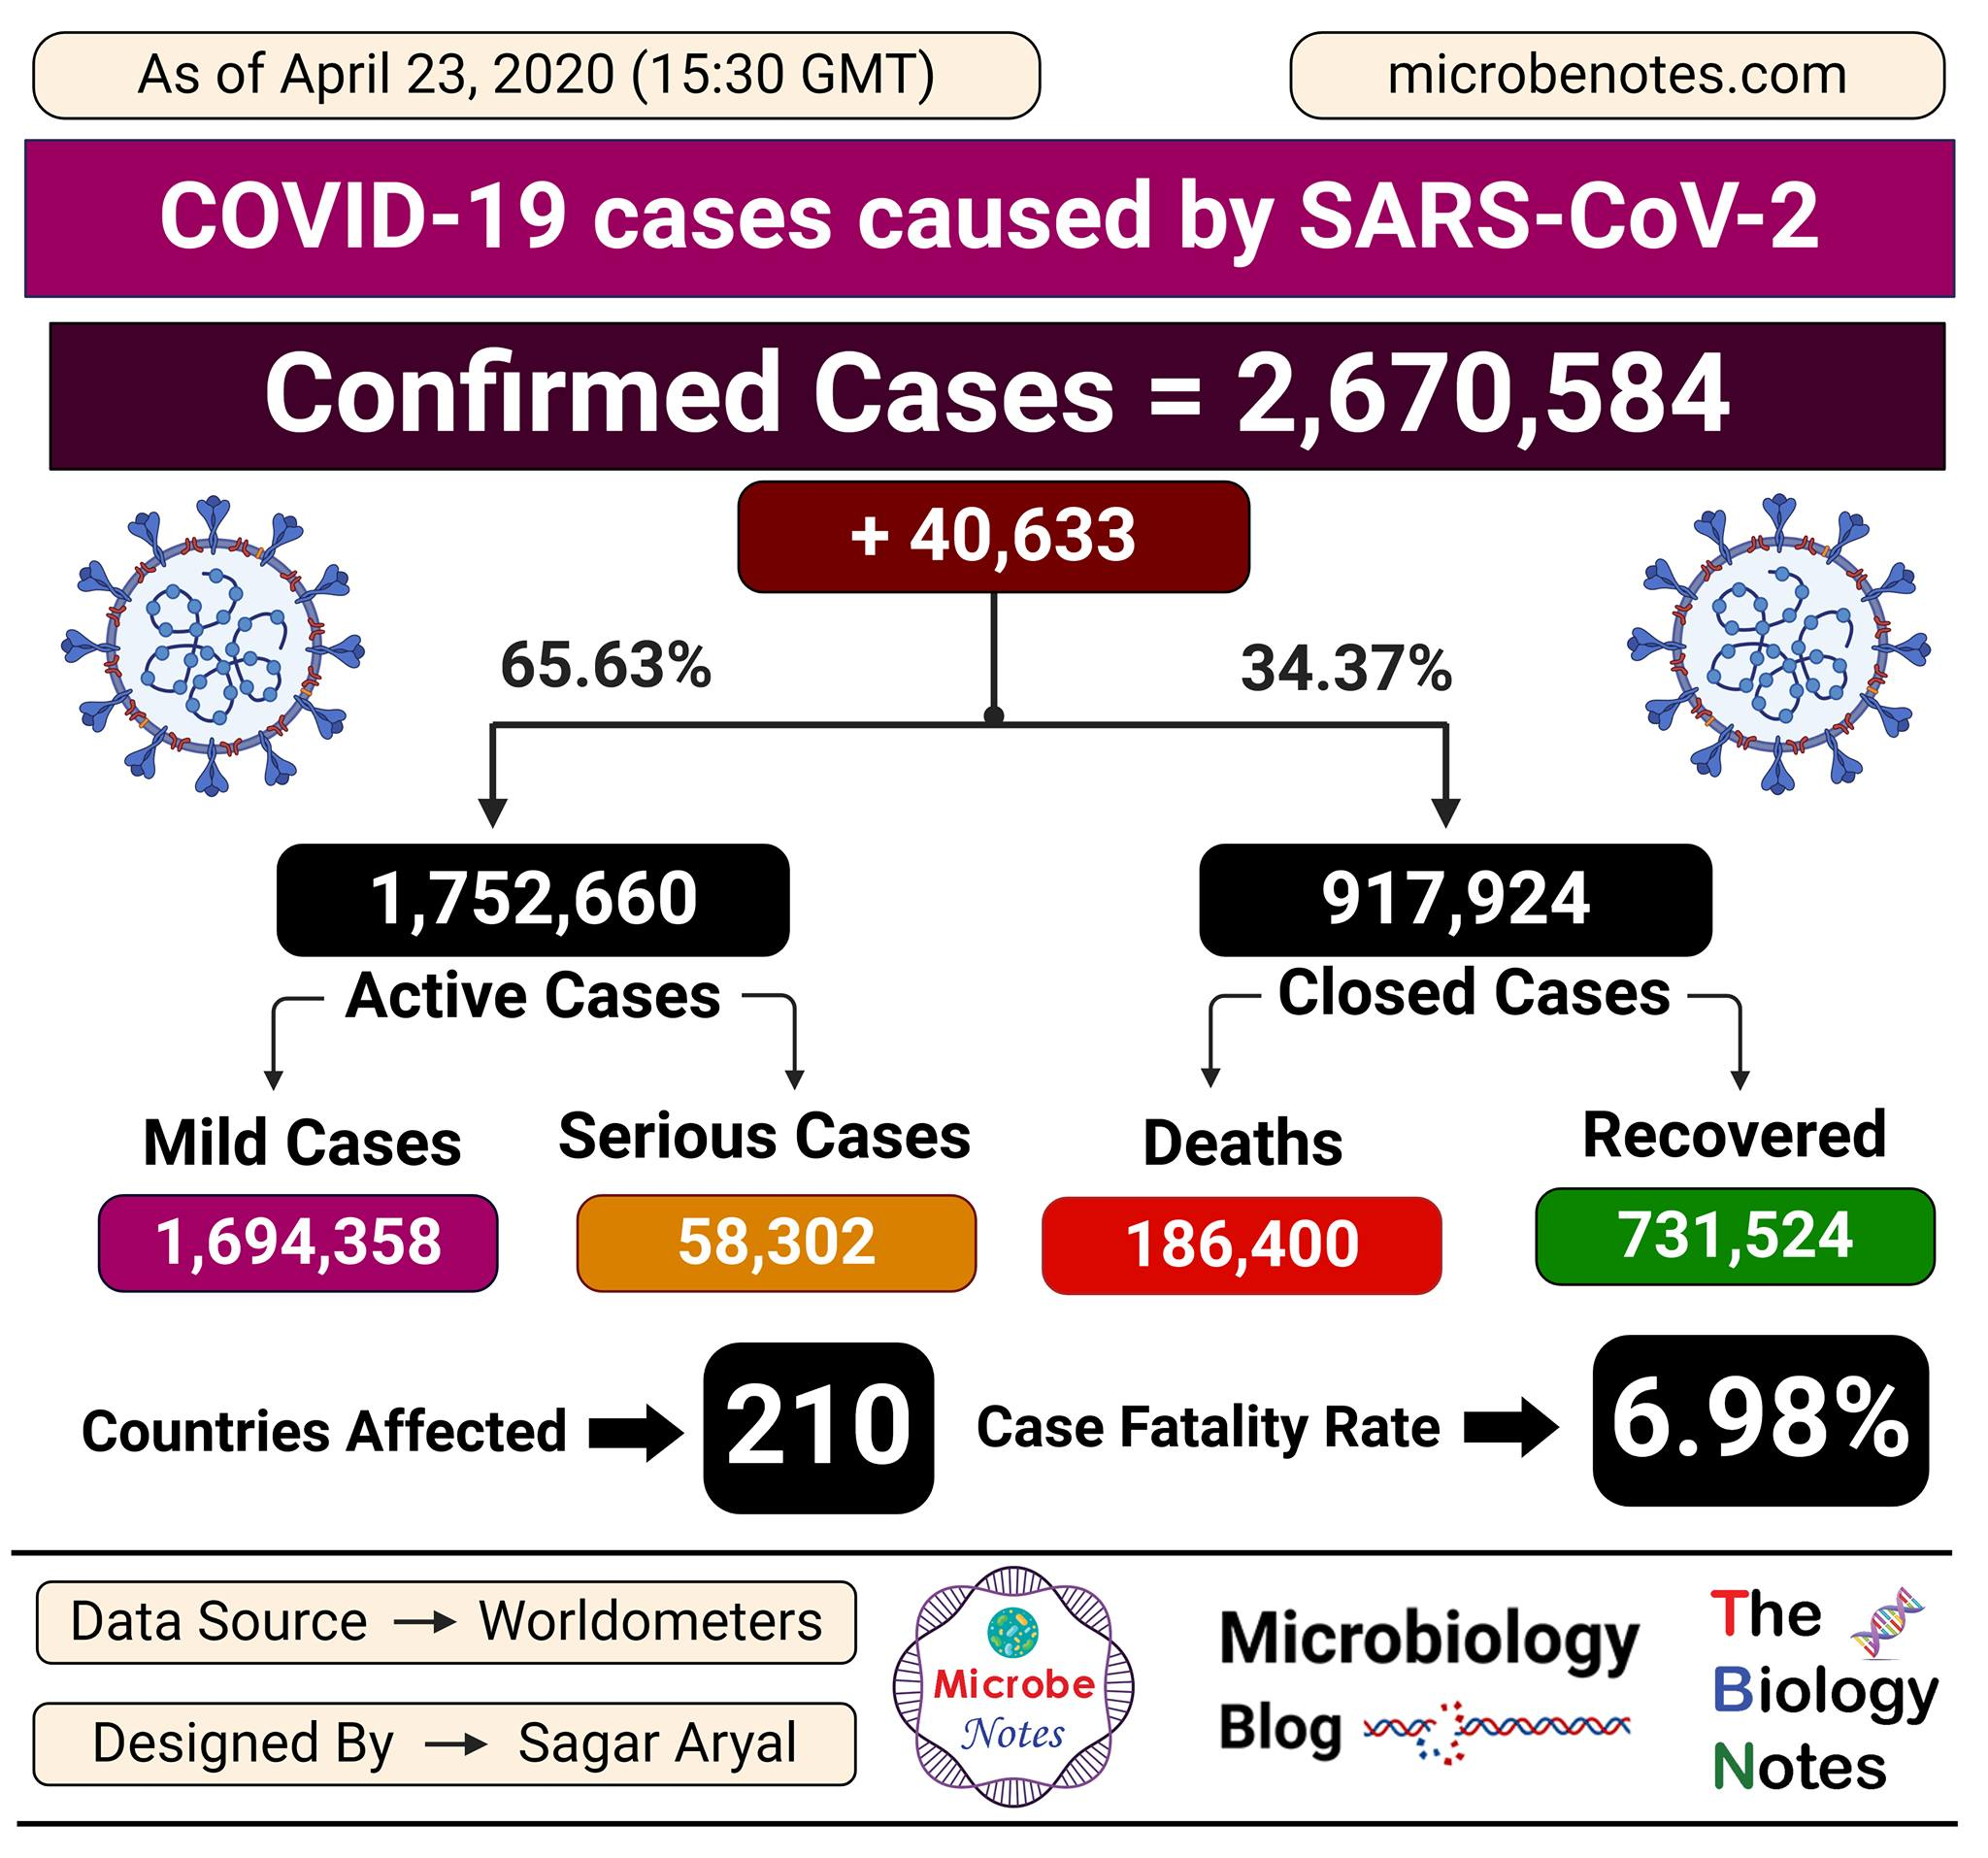 Epidemiology of COVID-19 caused by SARS-CoV-2 as of April 23, 2020